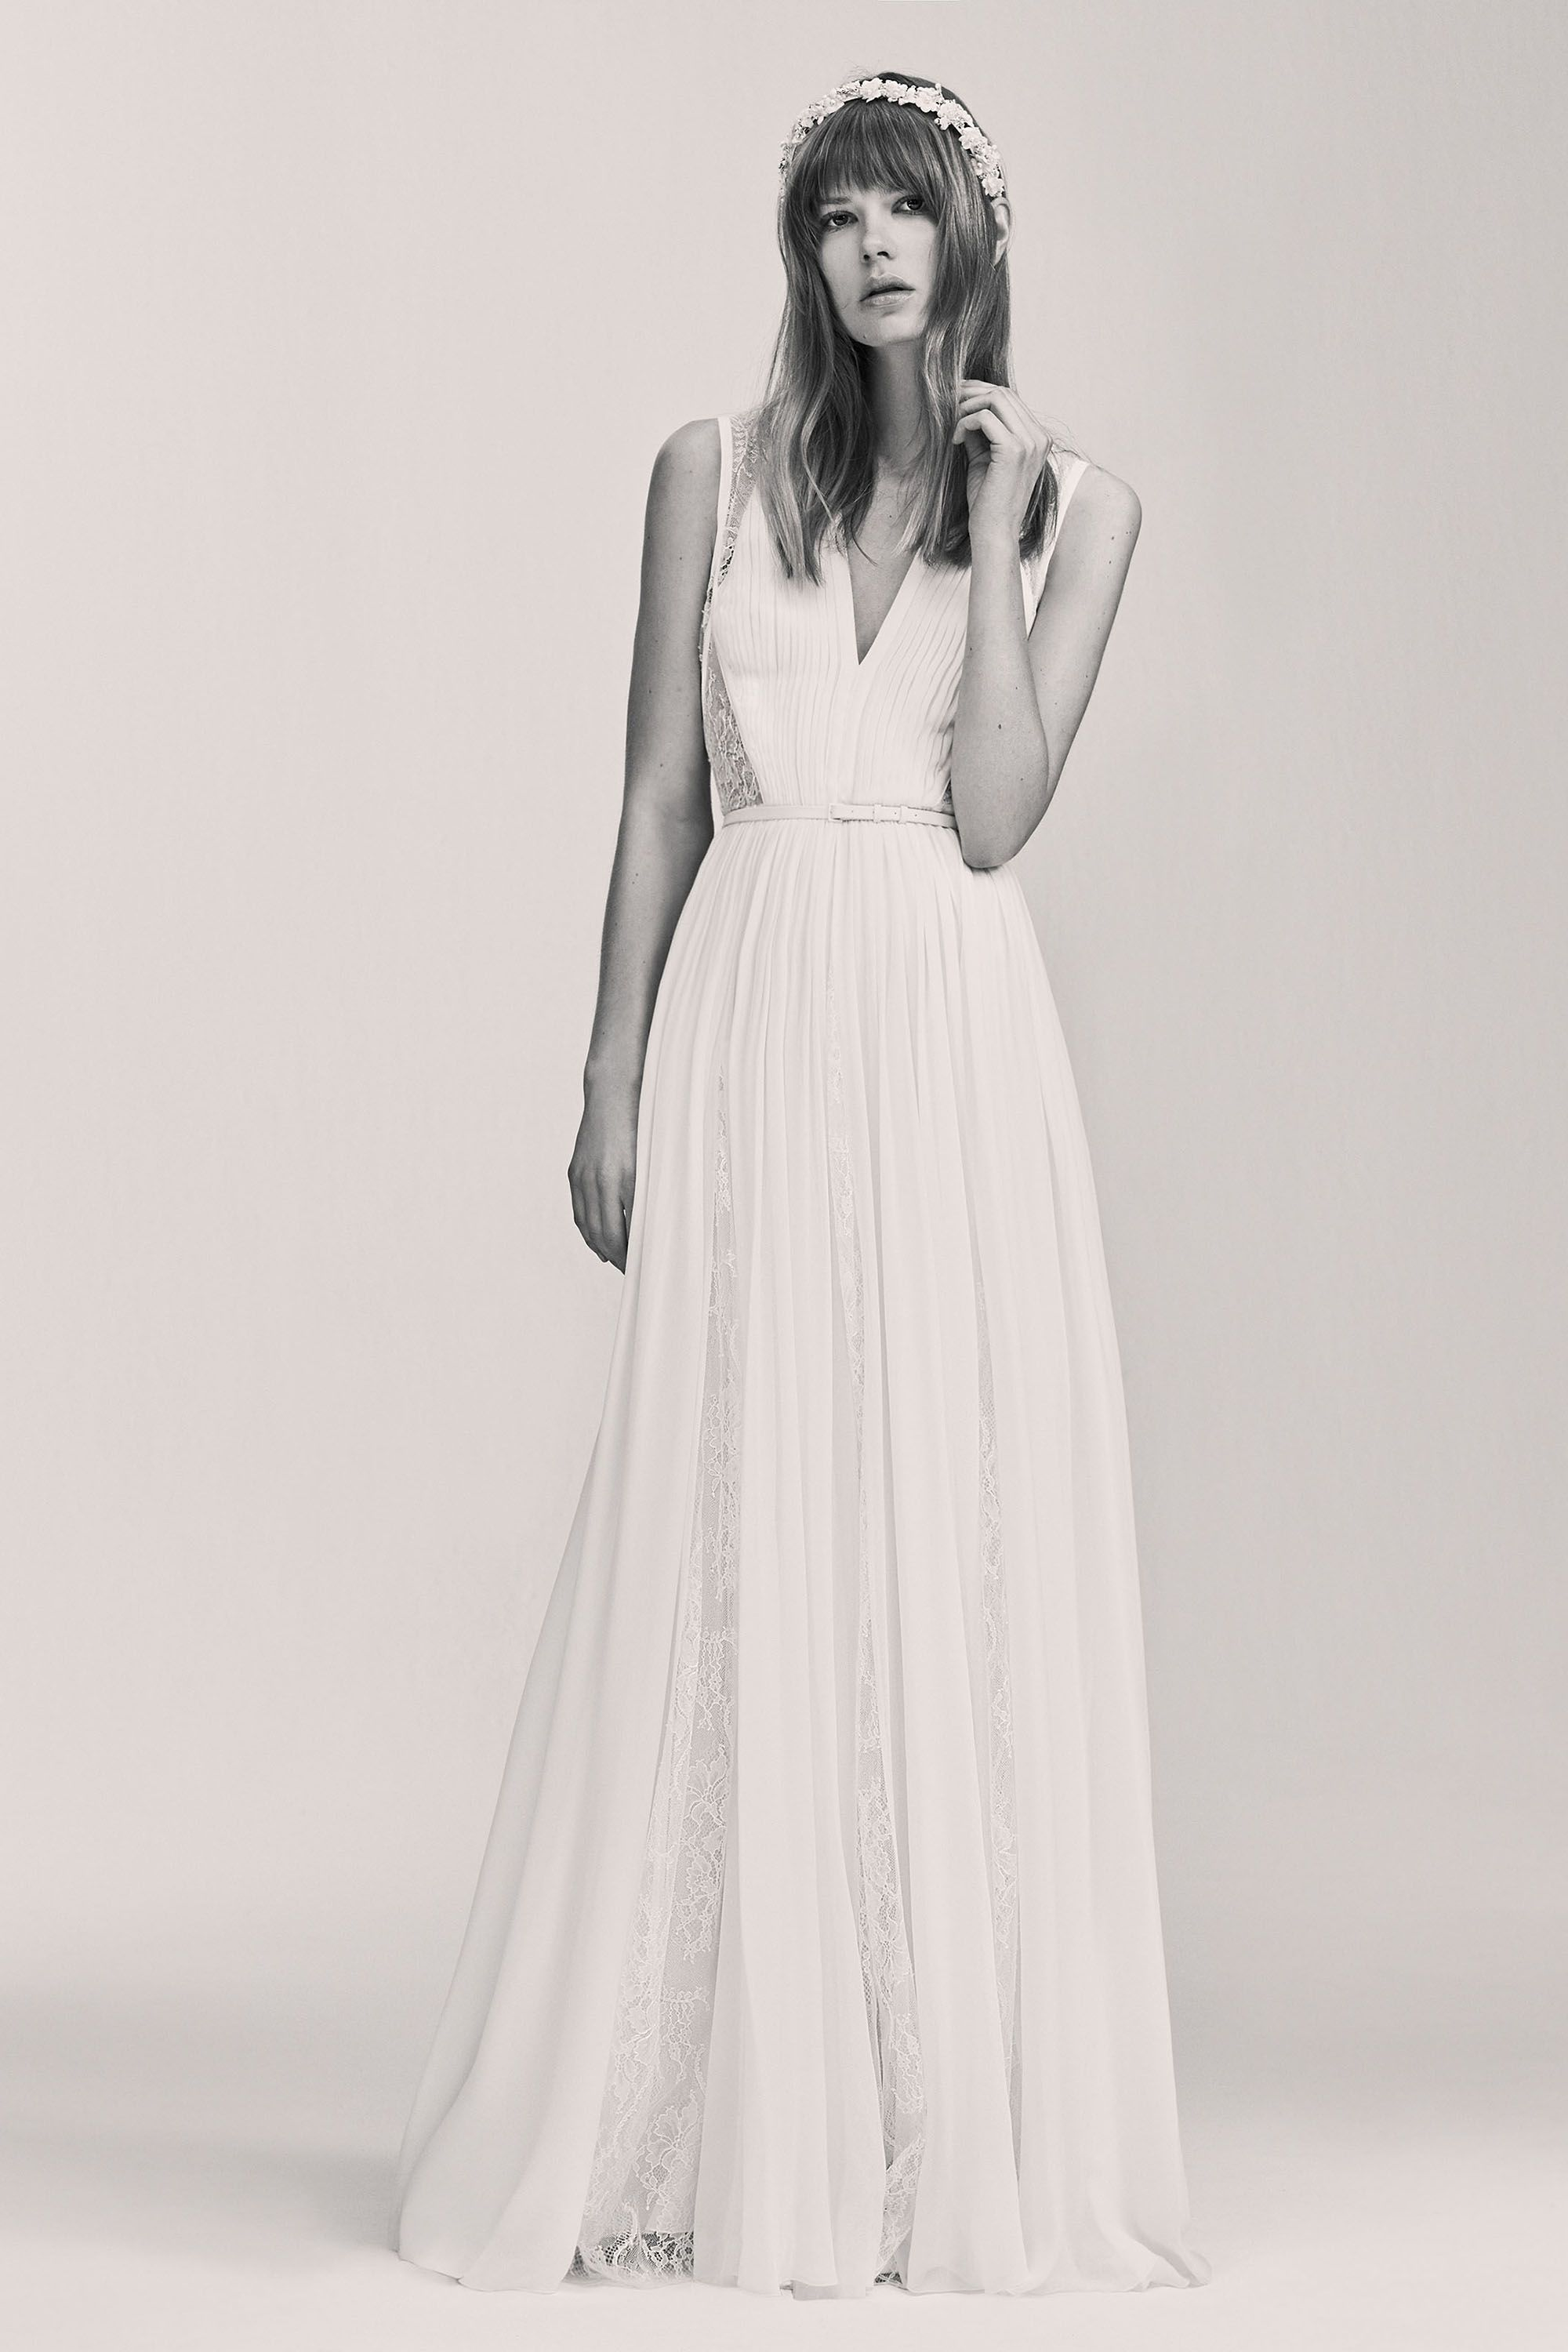 99 beautiful beach wedding dresses bridal gowns for a beach 99 beautiful beach wedding dresses bridal gowns for a beach destination wedding ombrellifo Choice Image